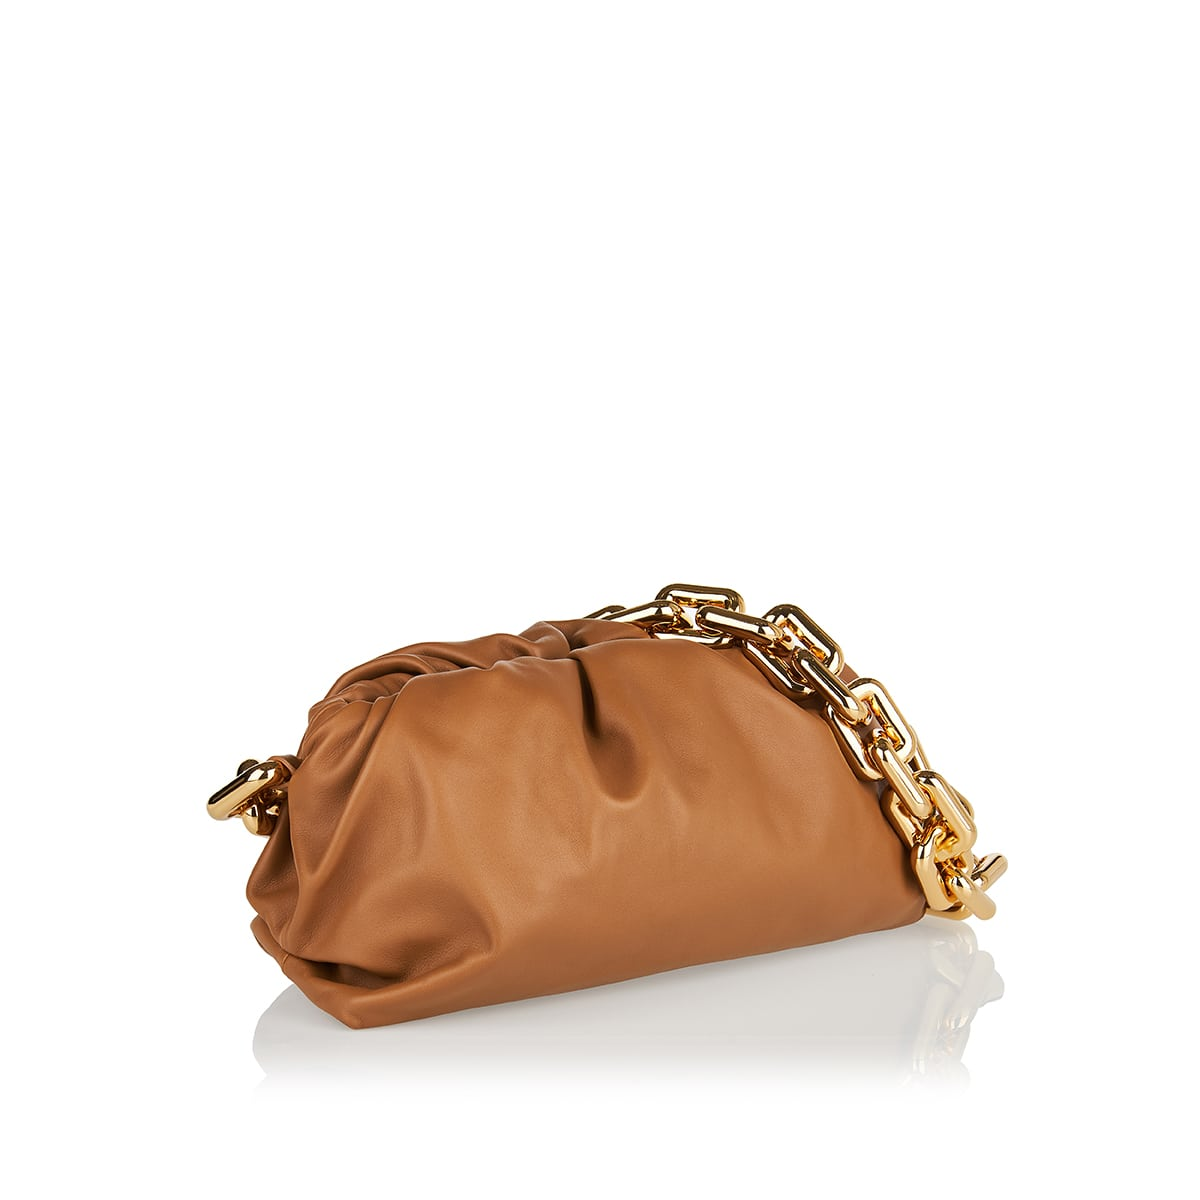 The Chain Pouch large clutch